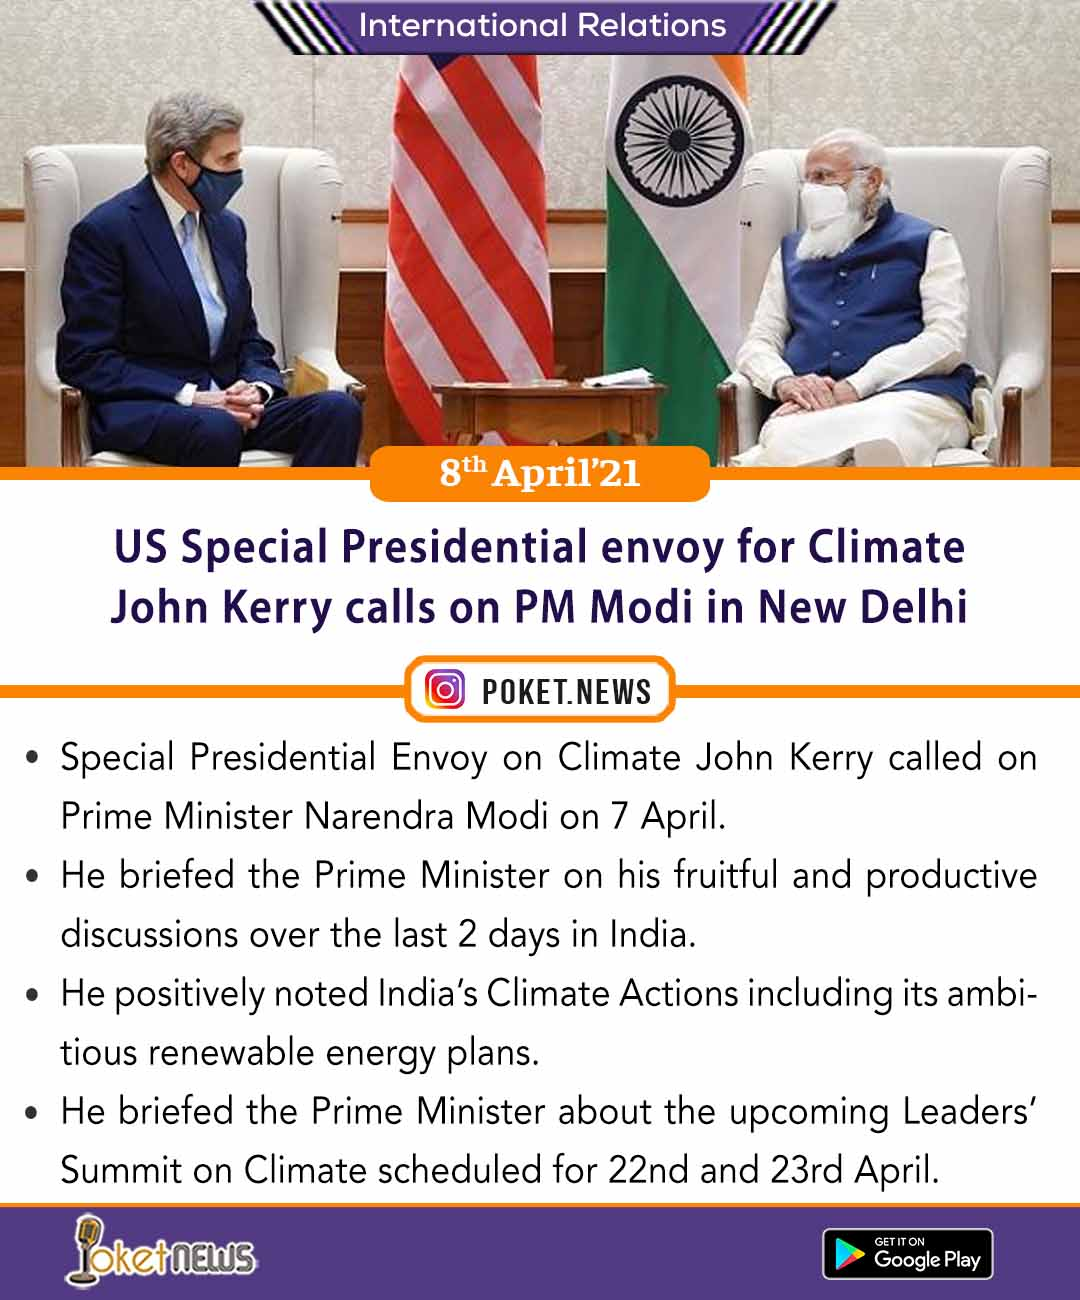 US Special Presidential envoy for Climate John Kerry calls on PM Modi in New Delhi